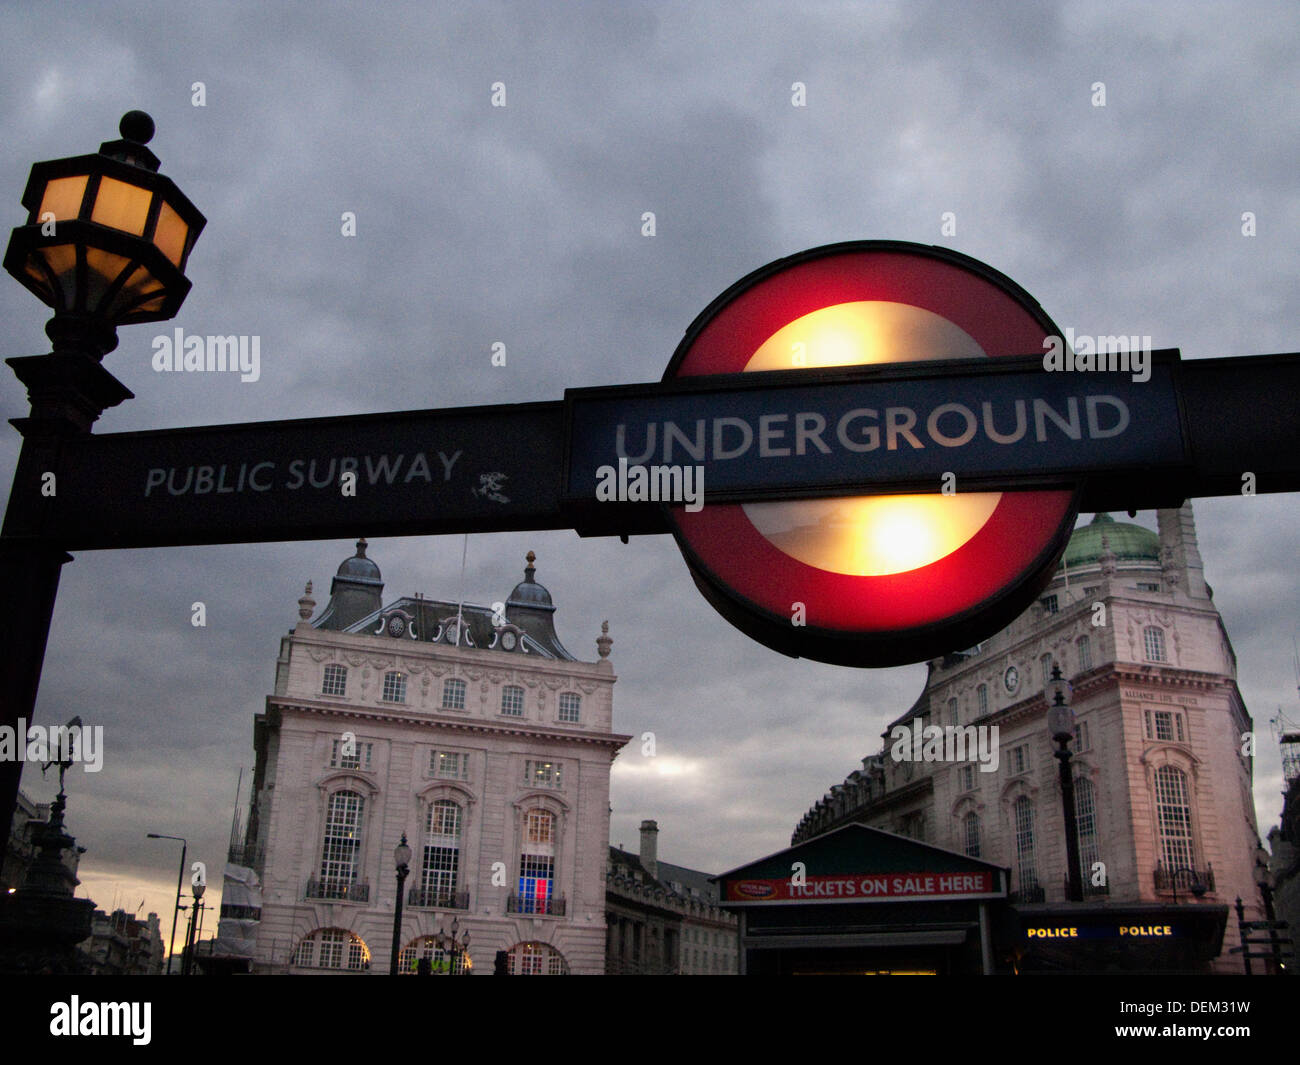 Underground Subway Sign with Buildings in Background, London, England - Stock Image